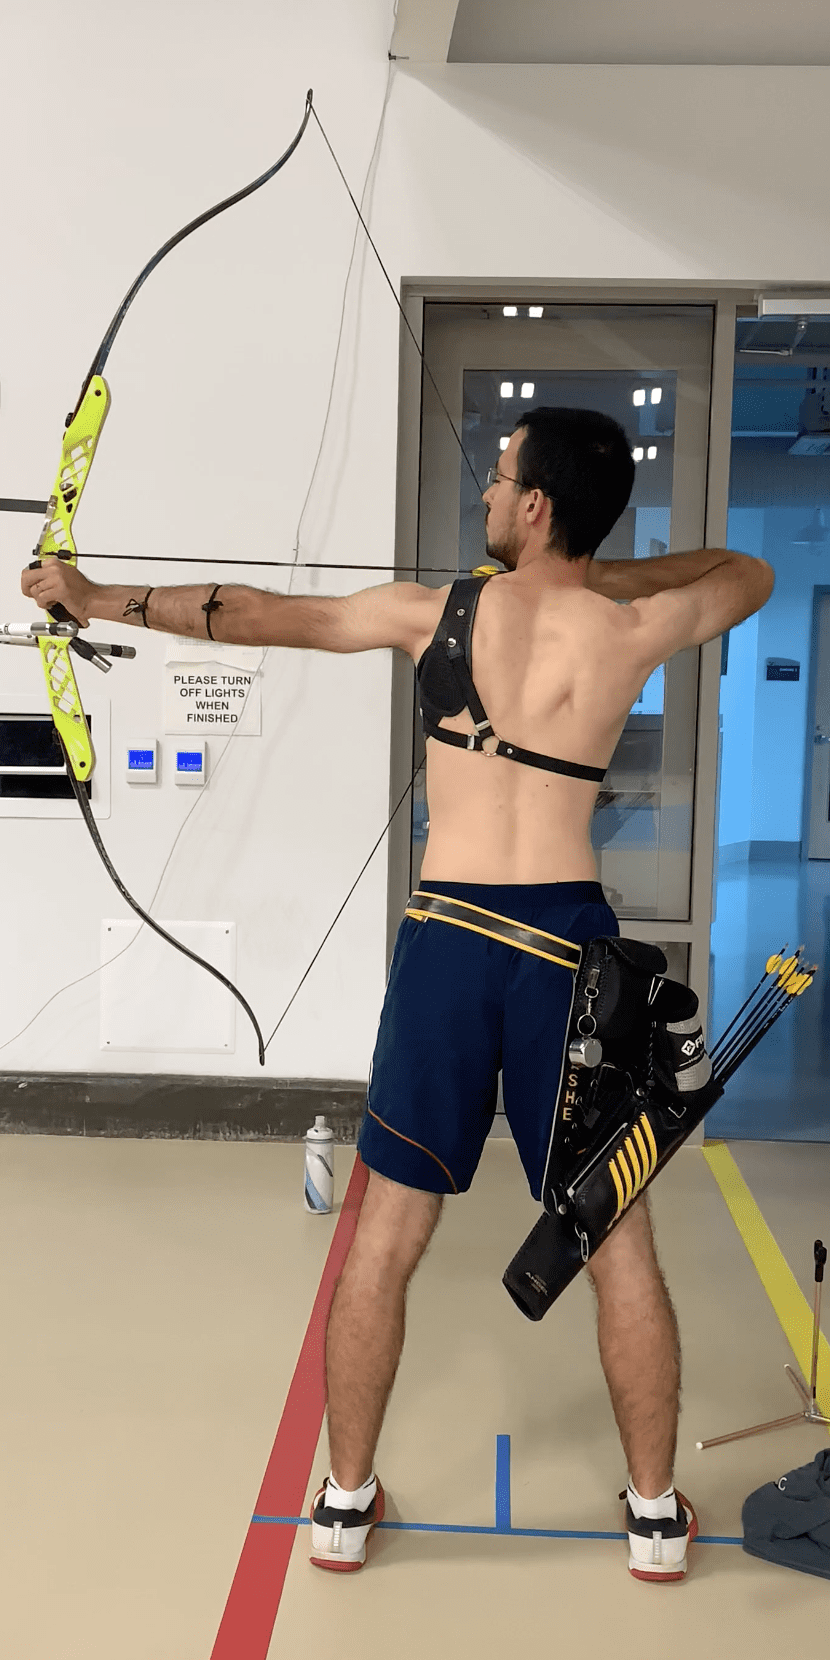 recurve archer showing good posture and spine position